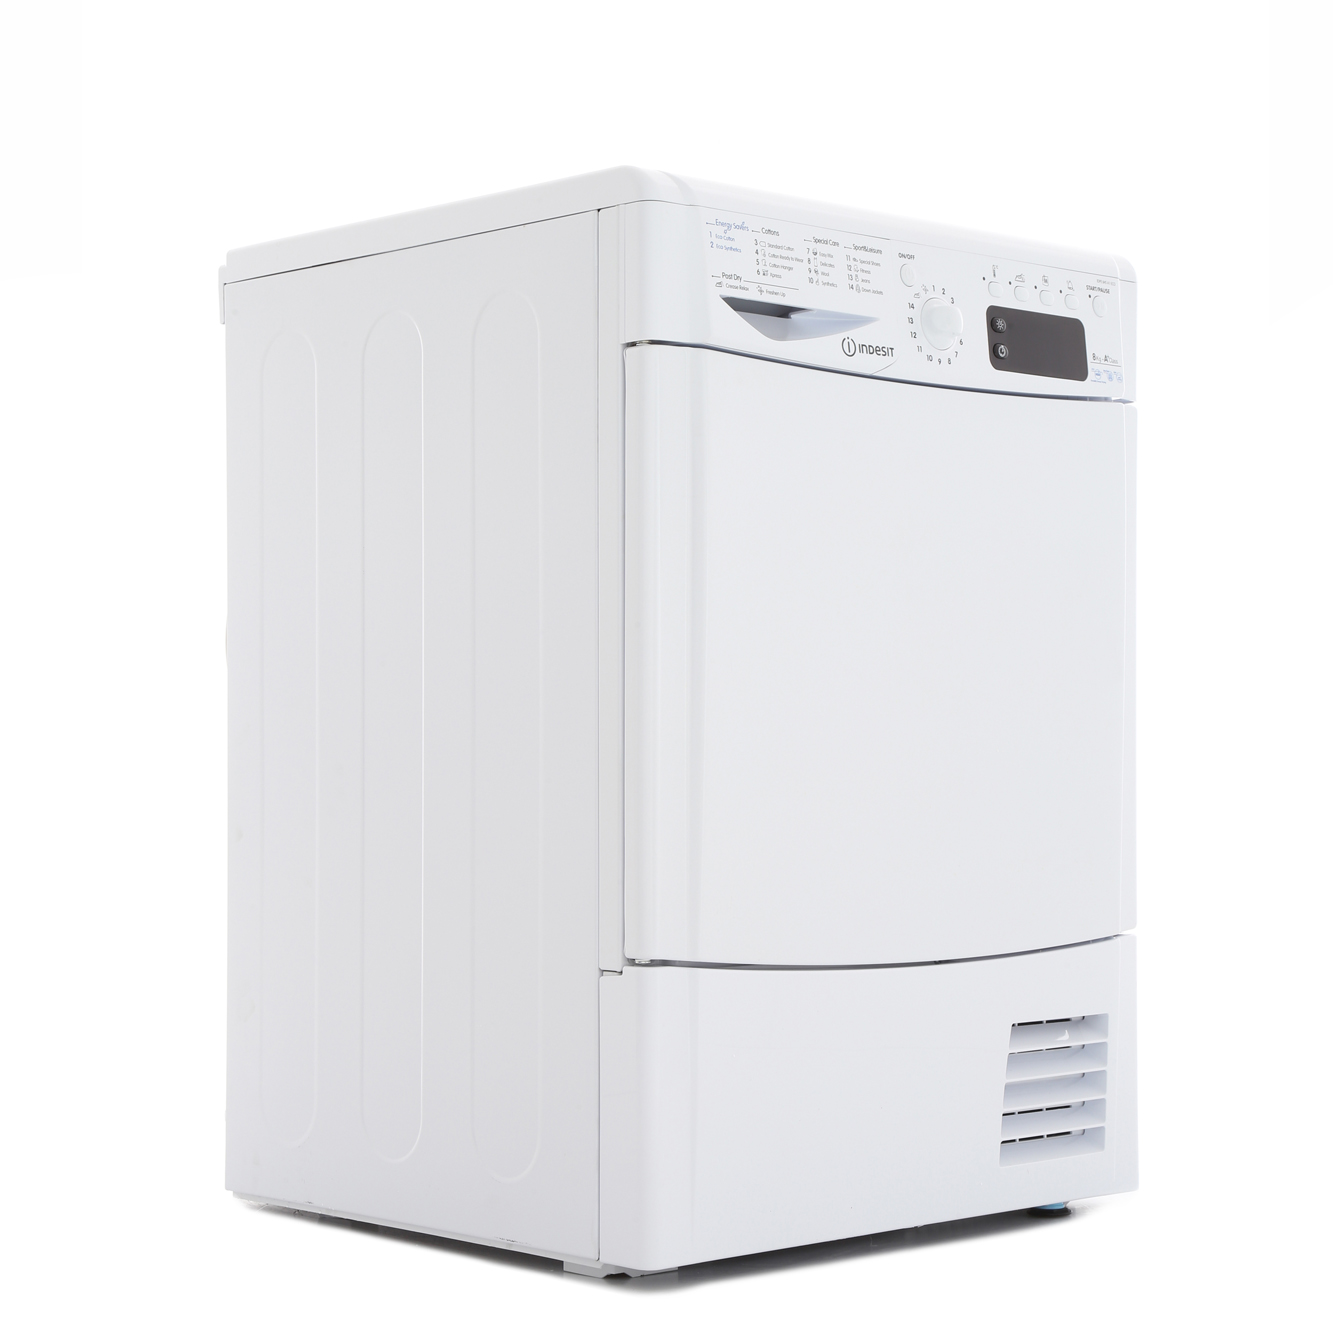 Indesit IDPE845A1ECO Condenser Dryer with Heat Pump Technology